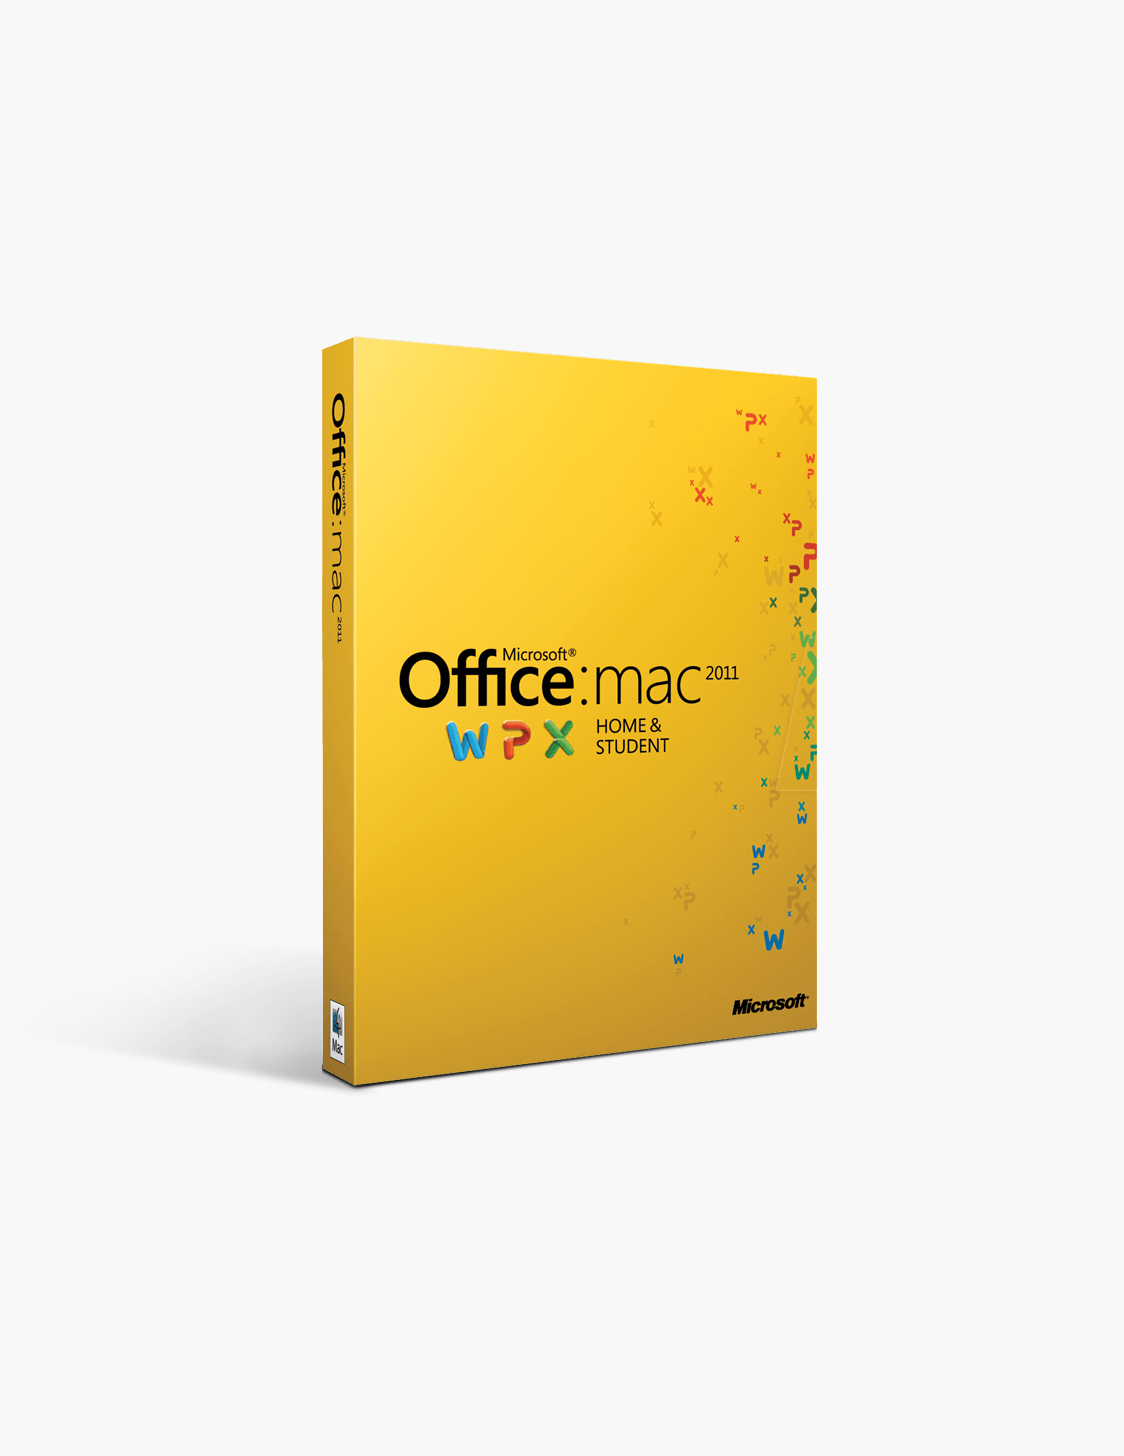 Microsoft Office 2011 Home And Student For Mac - 1 Install.